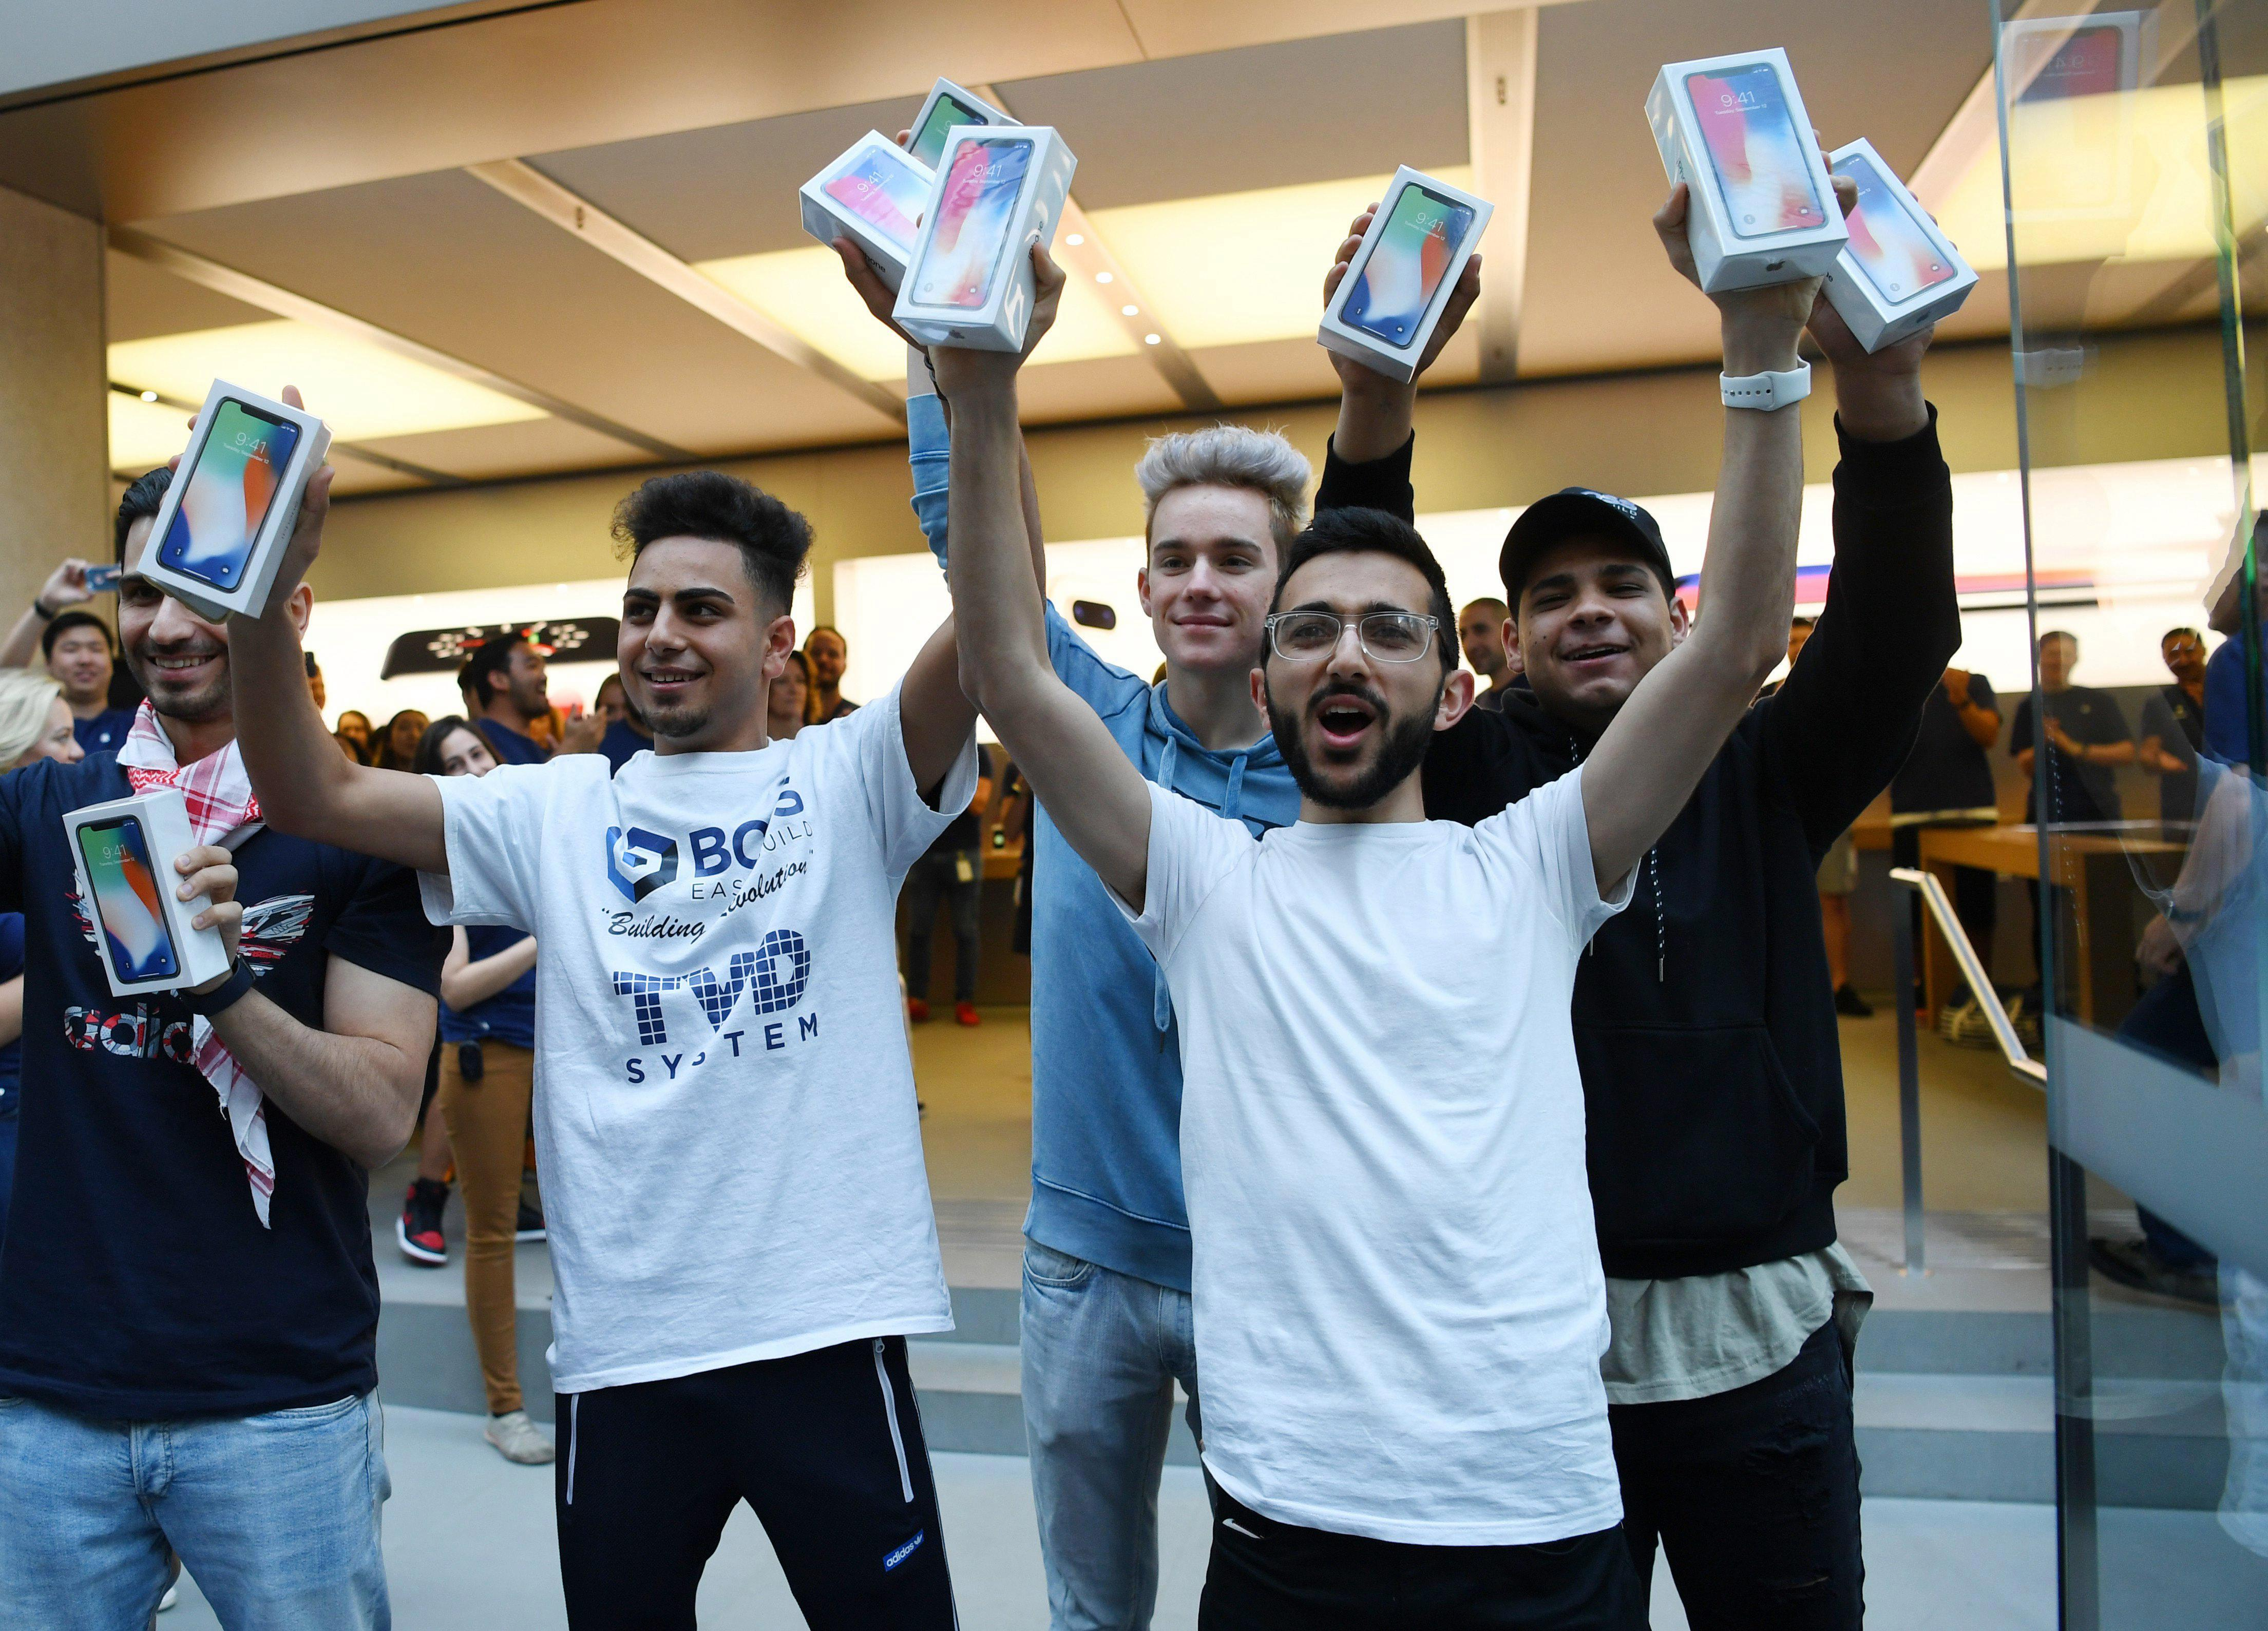 a6dd910423edbecc01e948653092c47d Apple iPhone X fans finally get their hands on the new device as thousands swarm stores worldwide on release day